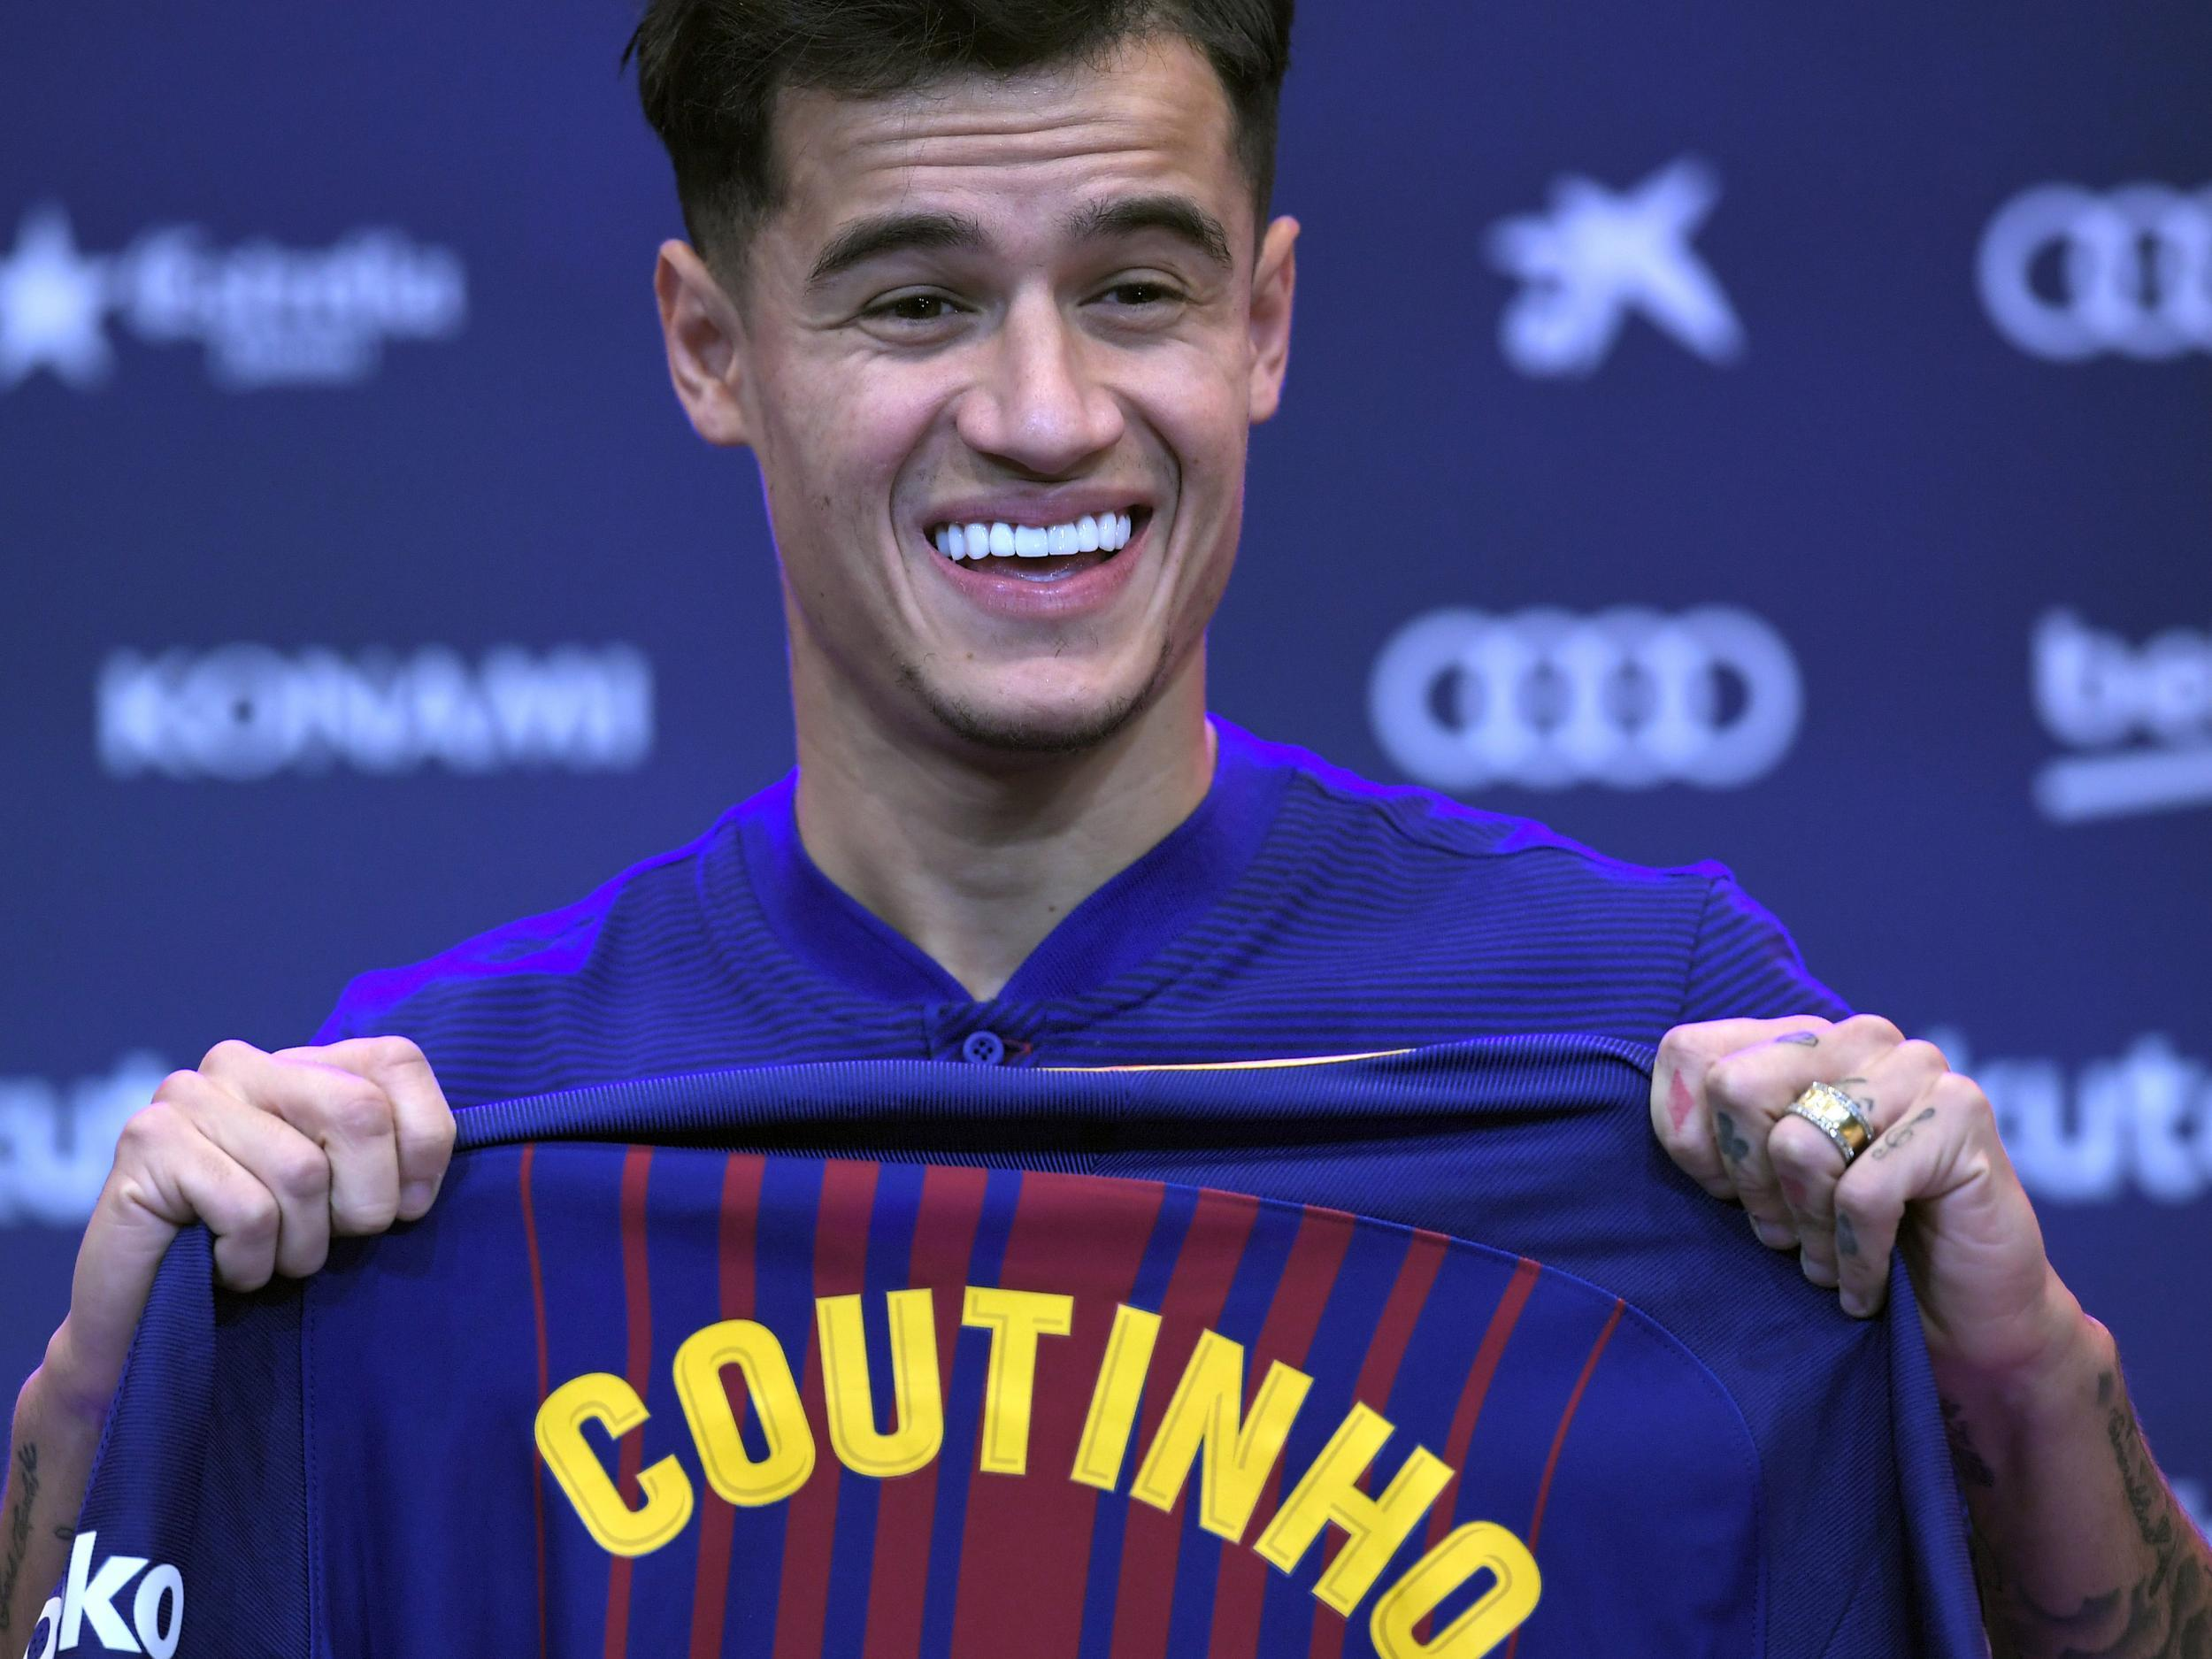 reputable site e434a 59128 Philippe Coutinho to wear number 14 shirt at Barcelona ...